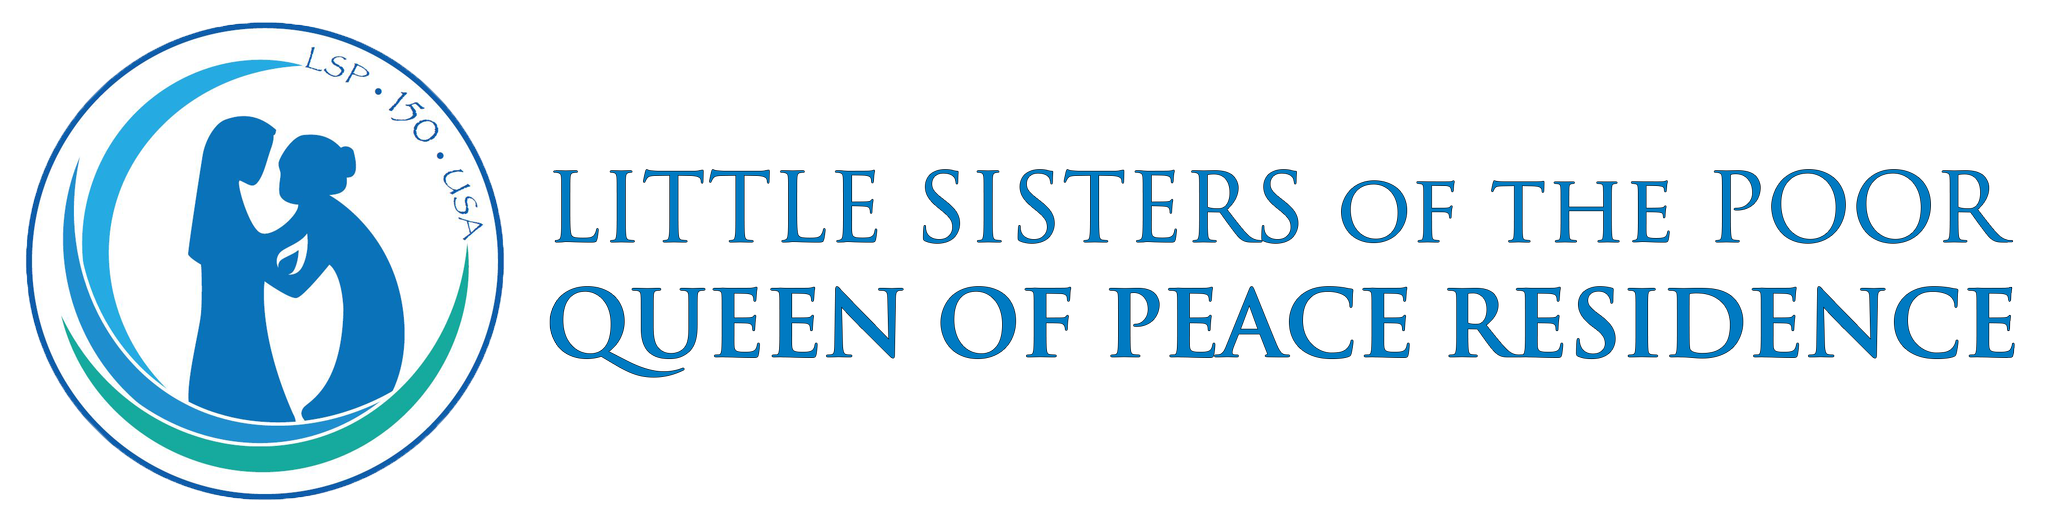 Little Sisters of the Poor Queens